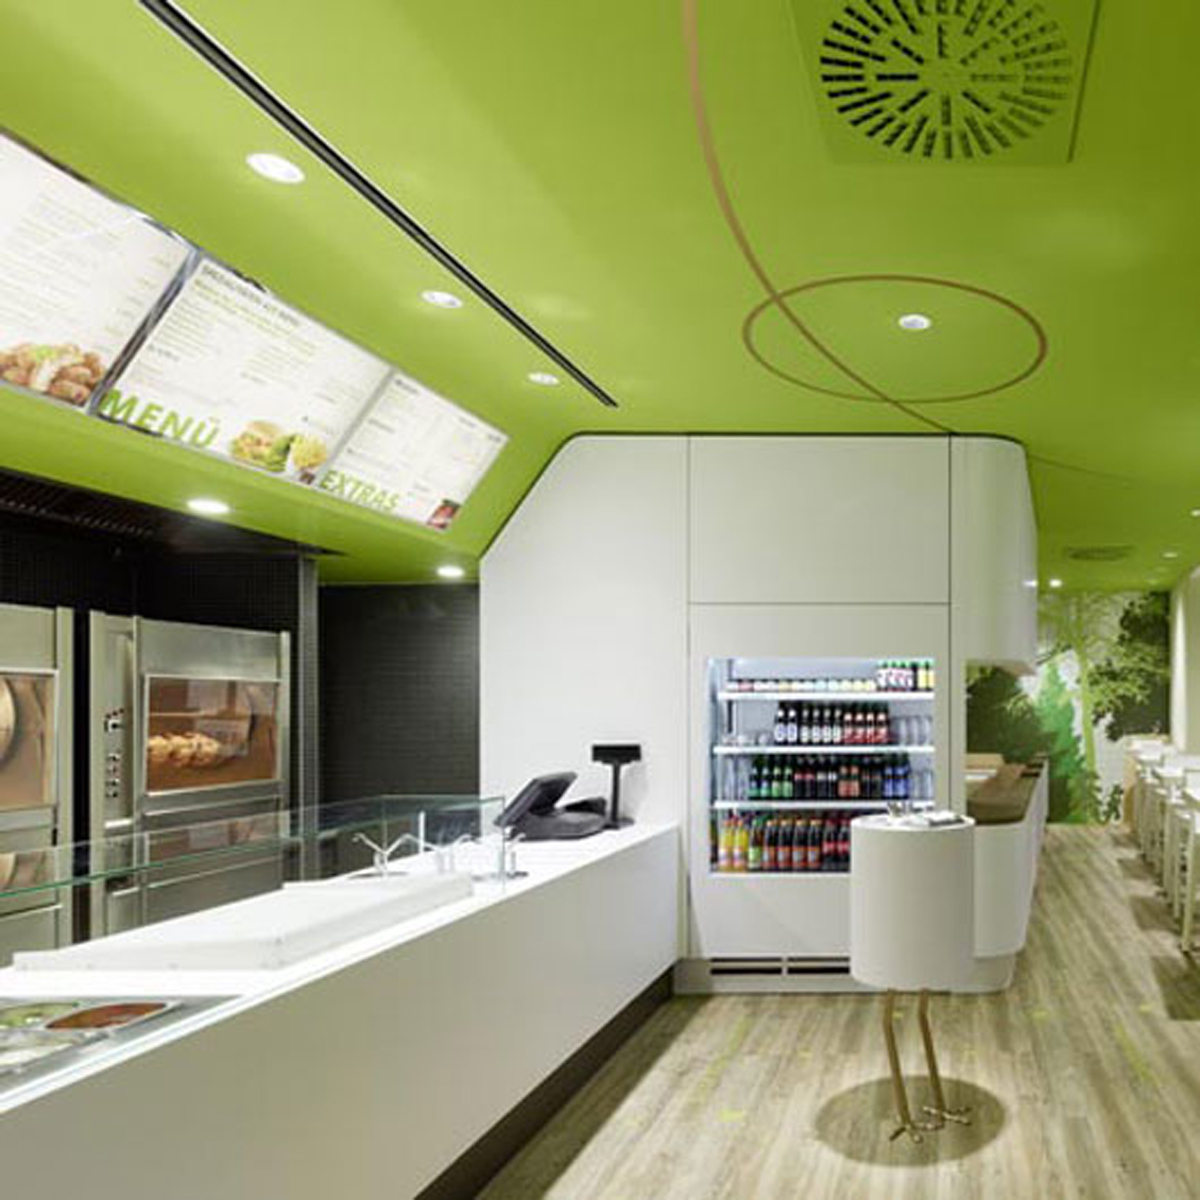 Green and clean restaurant interior for Cuisine on the green